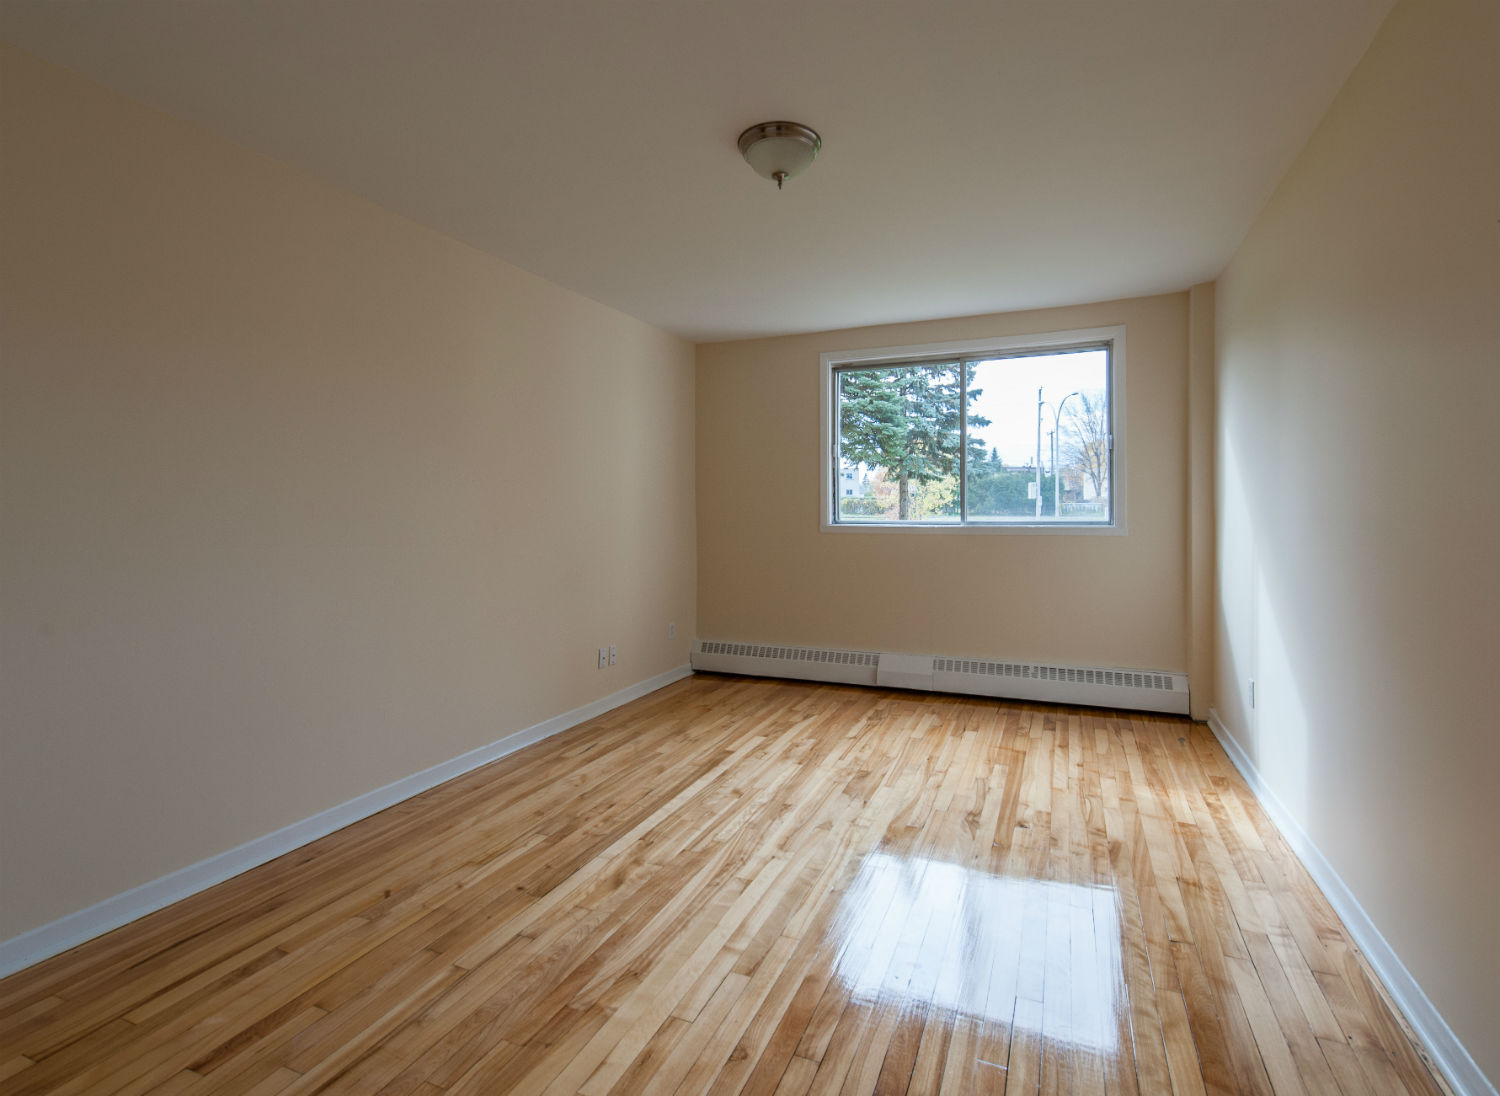 1 bedroom Apartments for rent in Pierrefonds-Roxboro at Place Riviera - Photo 05 - RentQuebecApartments – L35788